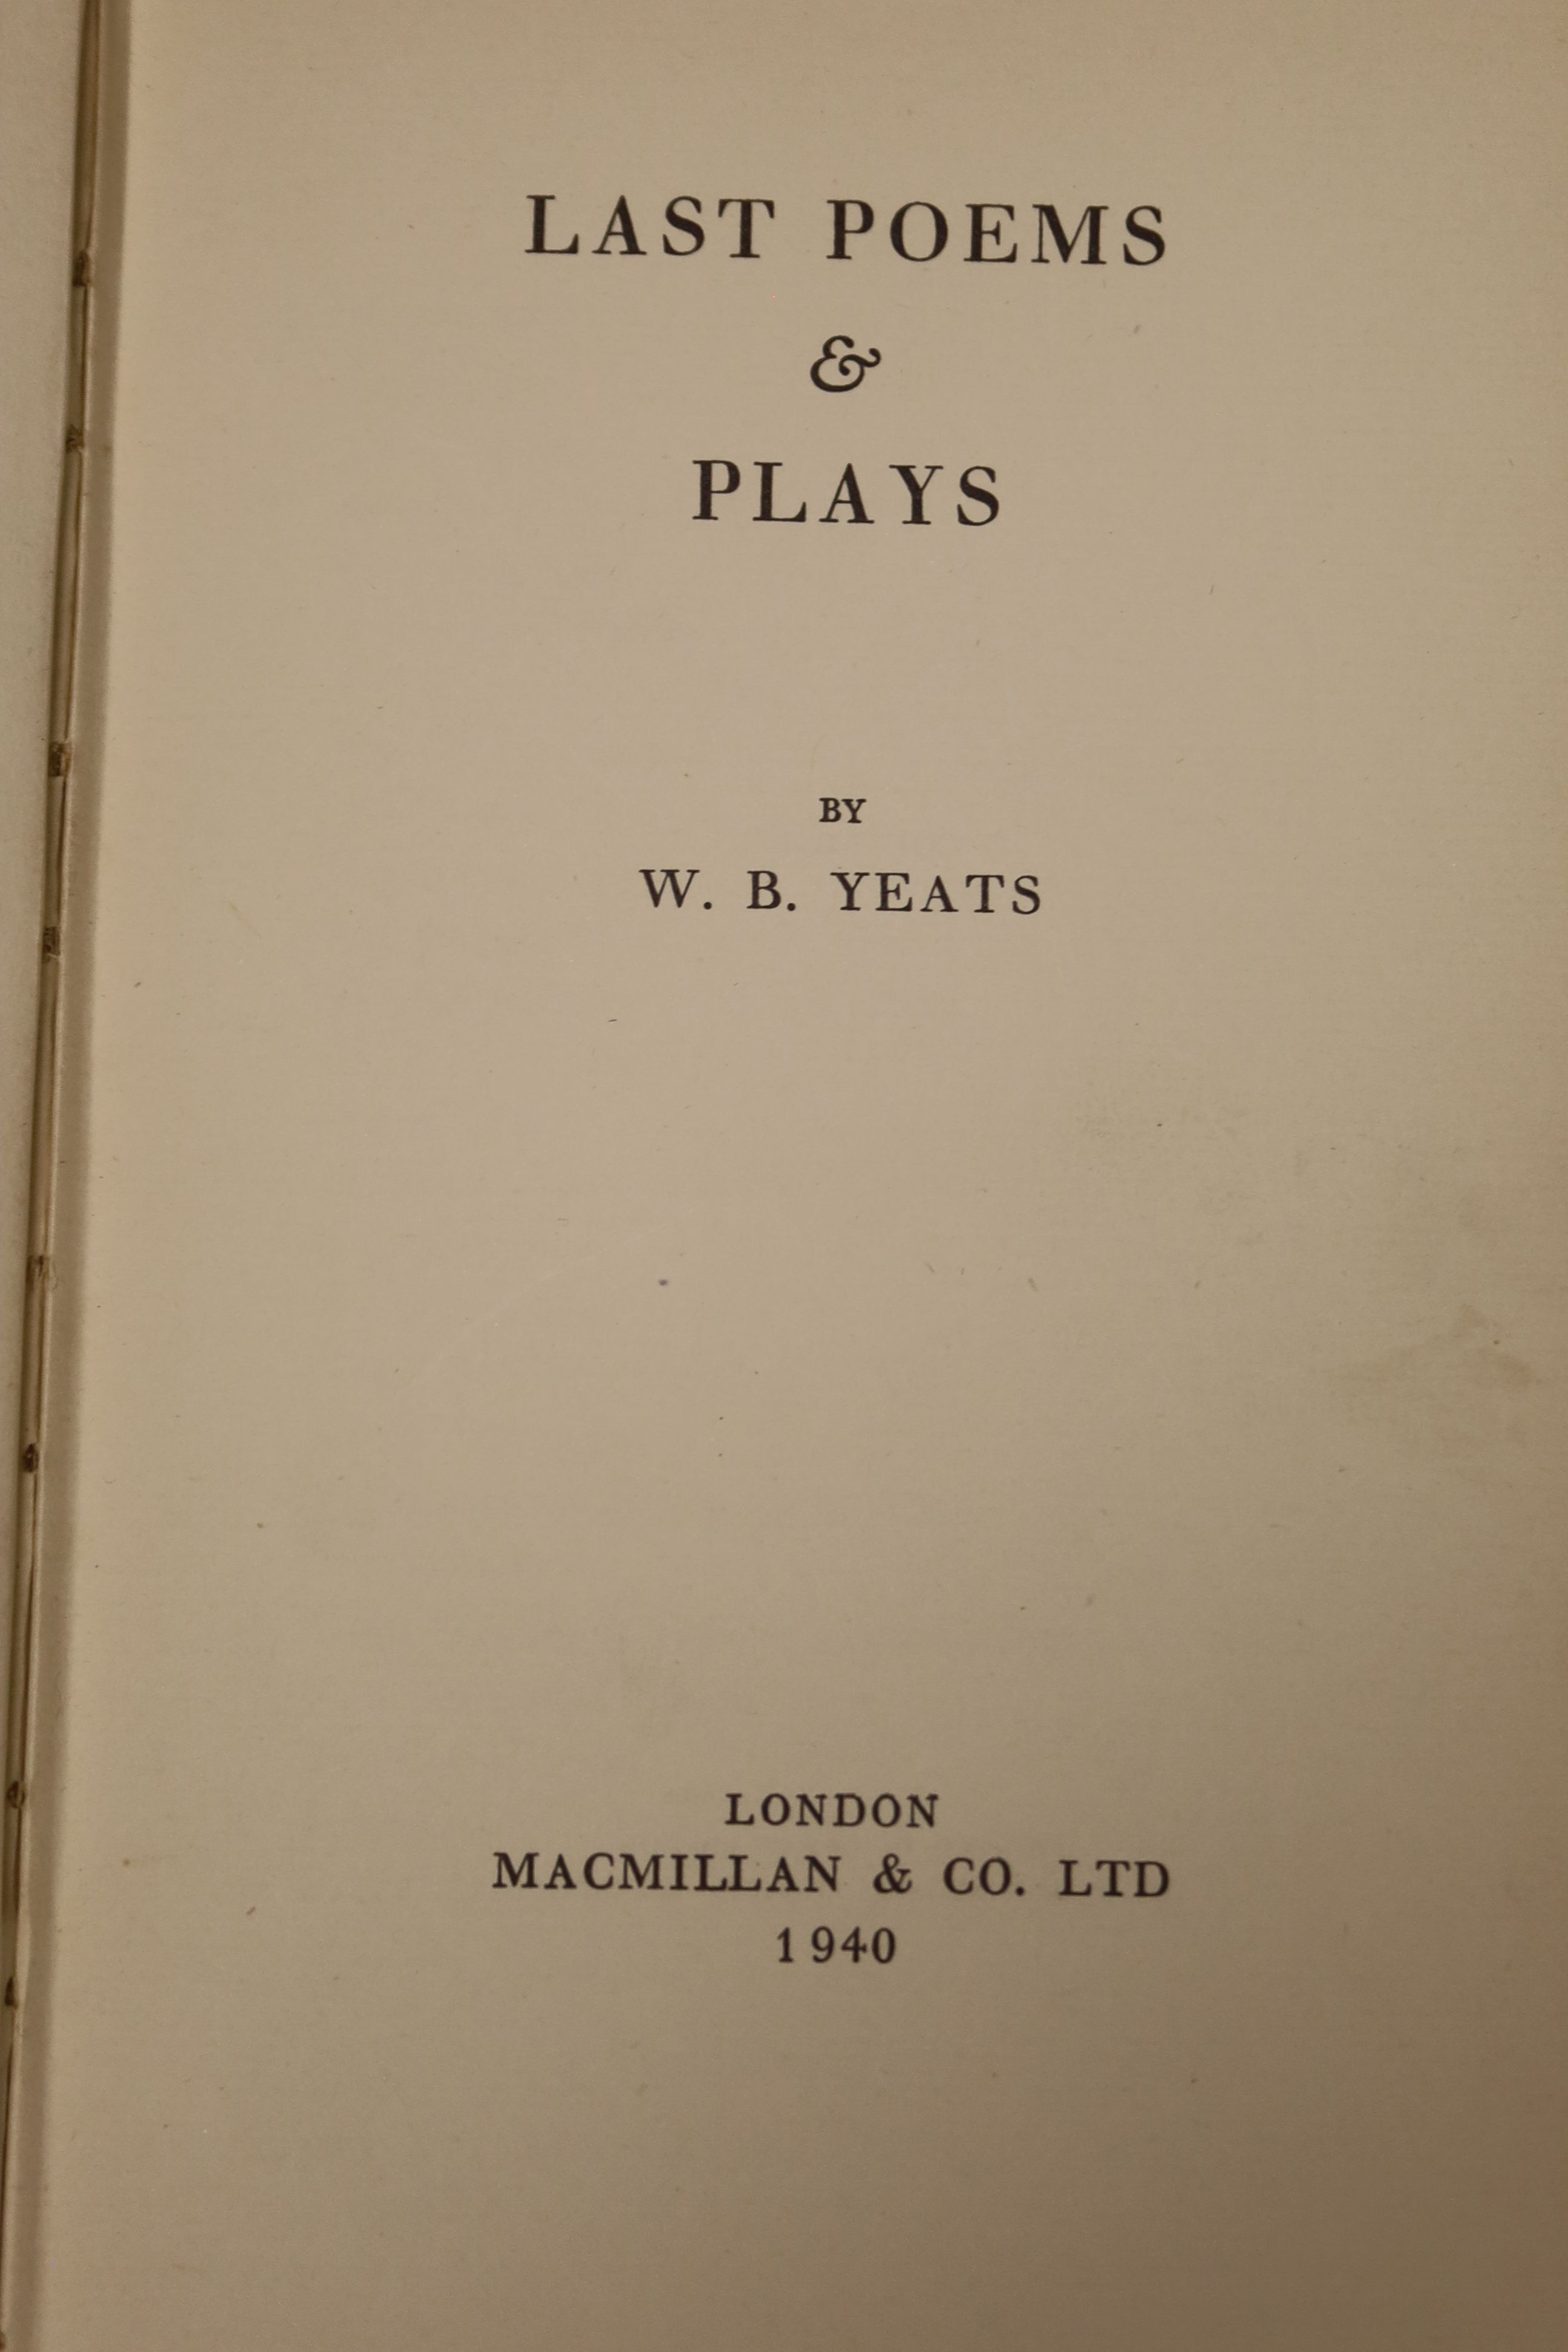 Yeats, William Butler - Last Poems, one of 2000,8vo, cloth, MacMillan, London 1940; Read, - Image 7 of 8